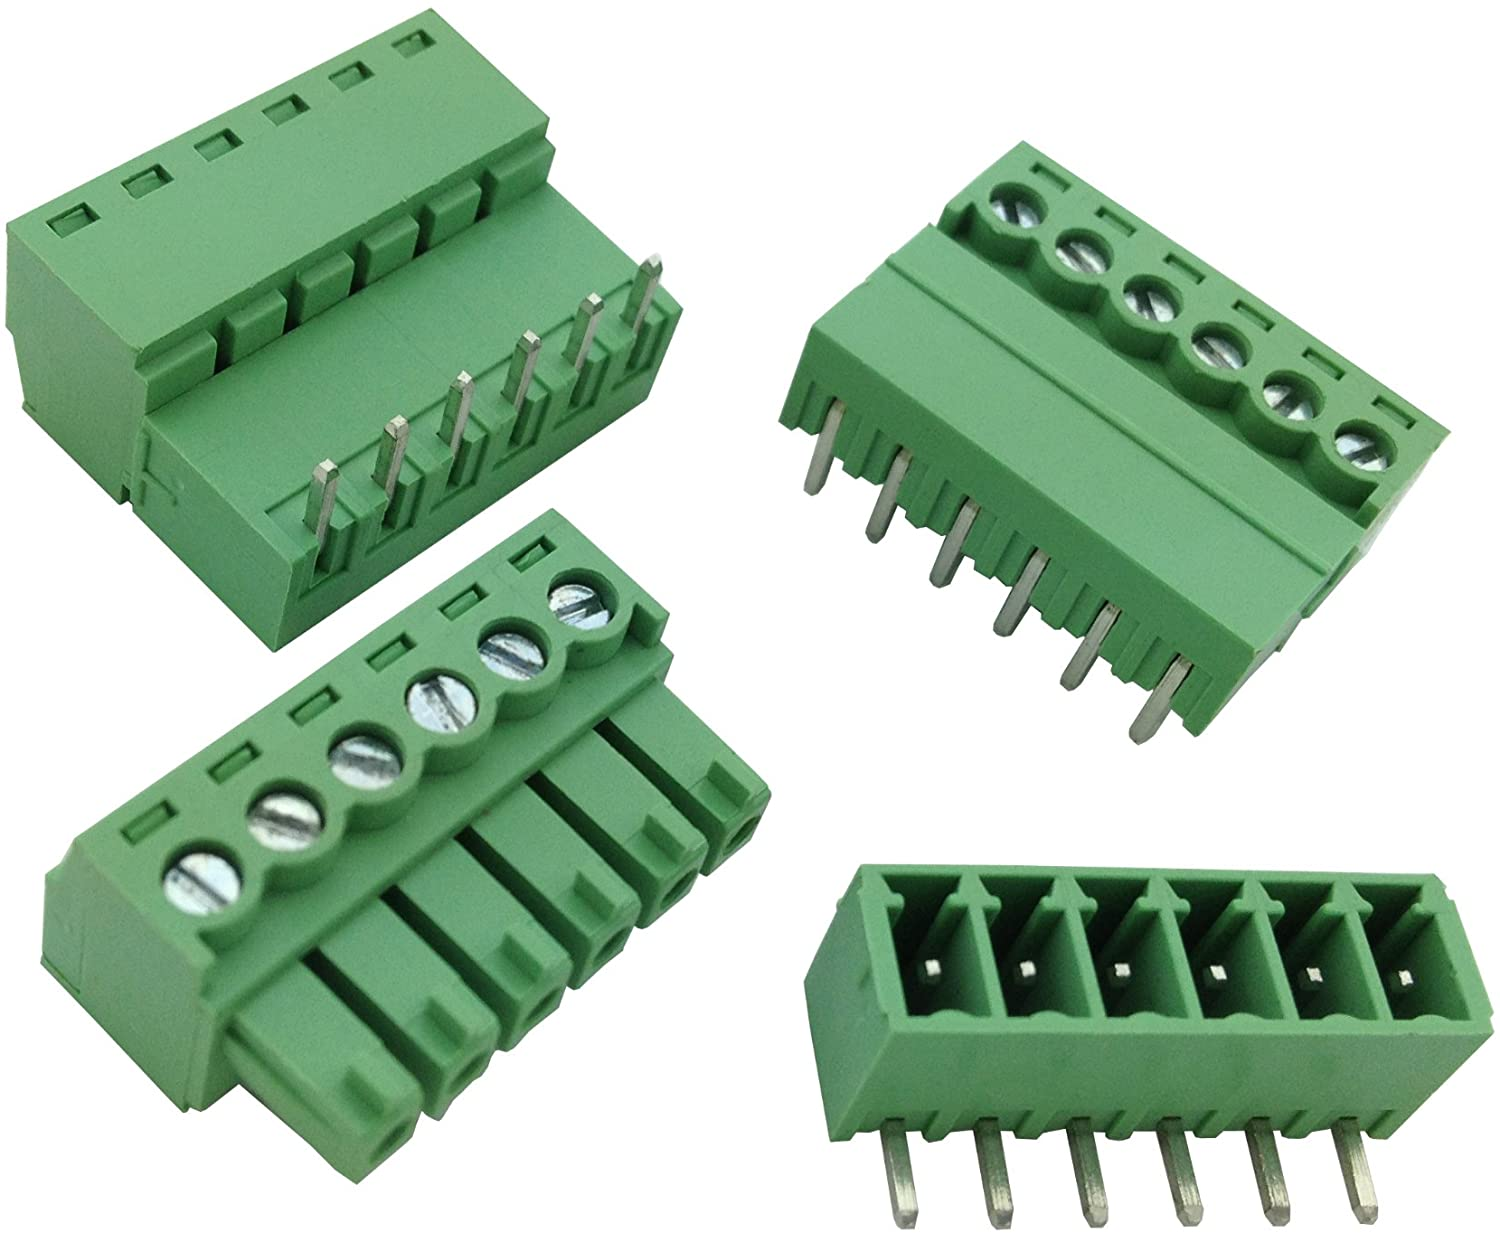 200 Pcs Pitch 3.81mm Angle 6way/pin Screw Terminal Block Connector w/Angle Pin Green Color Pluggable Type Skywalking